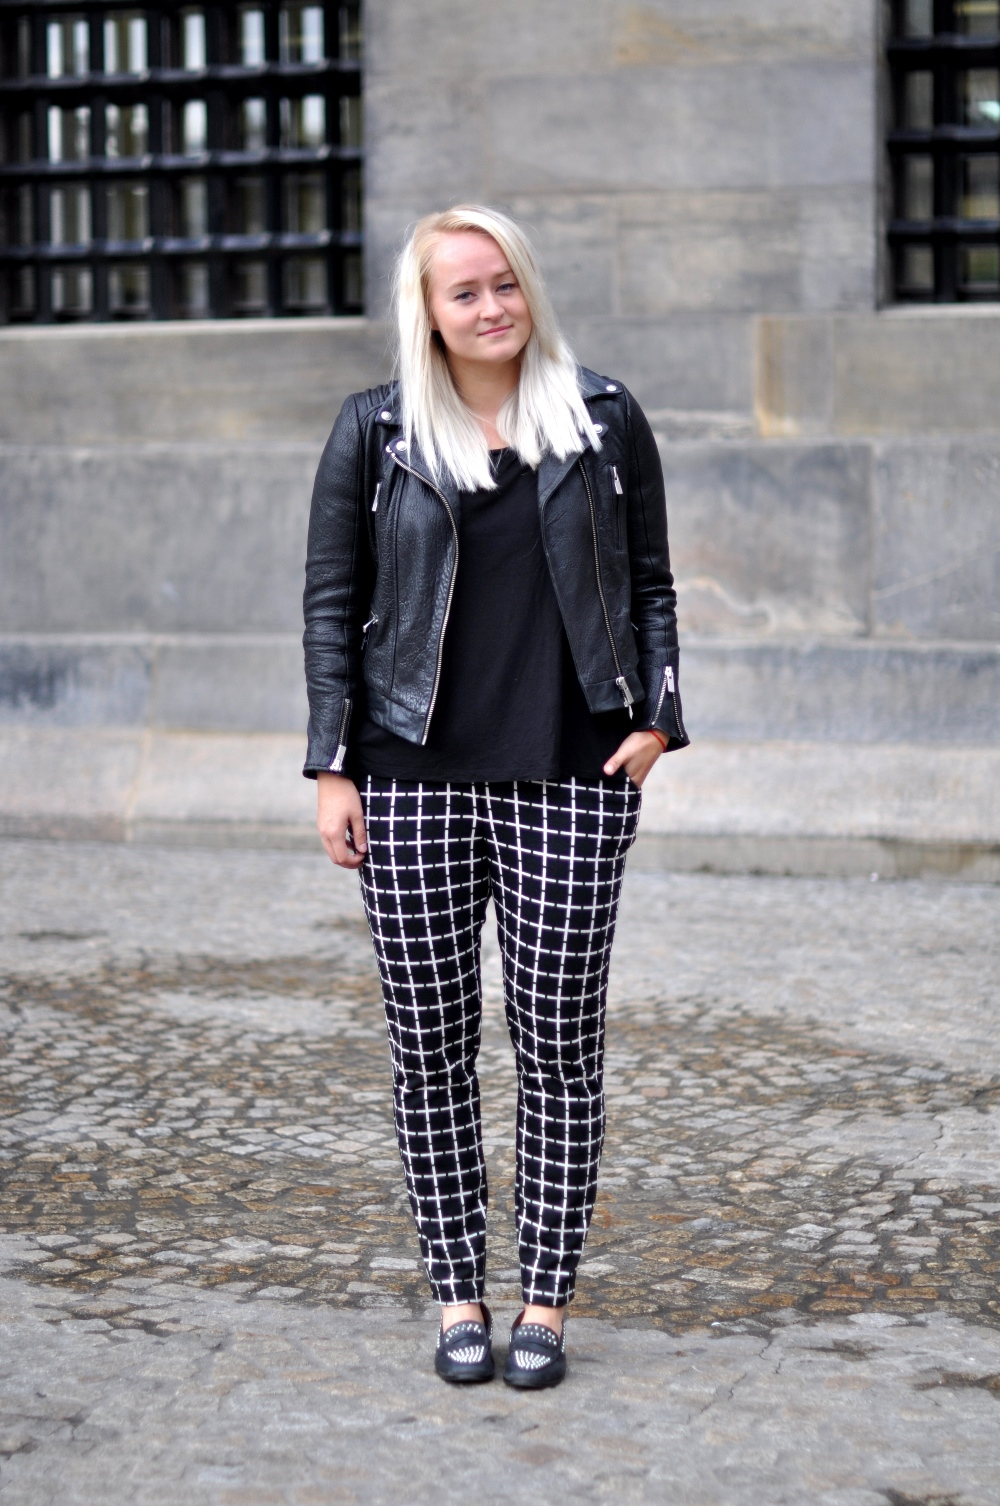 53fa8127 OUTFIT ASOS CHECK TROUSERS THE KOOPLES LEATHER BUBBLE JACKET ZARA LOAFERS (1 )